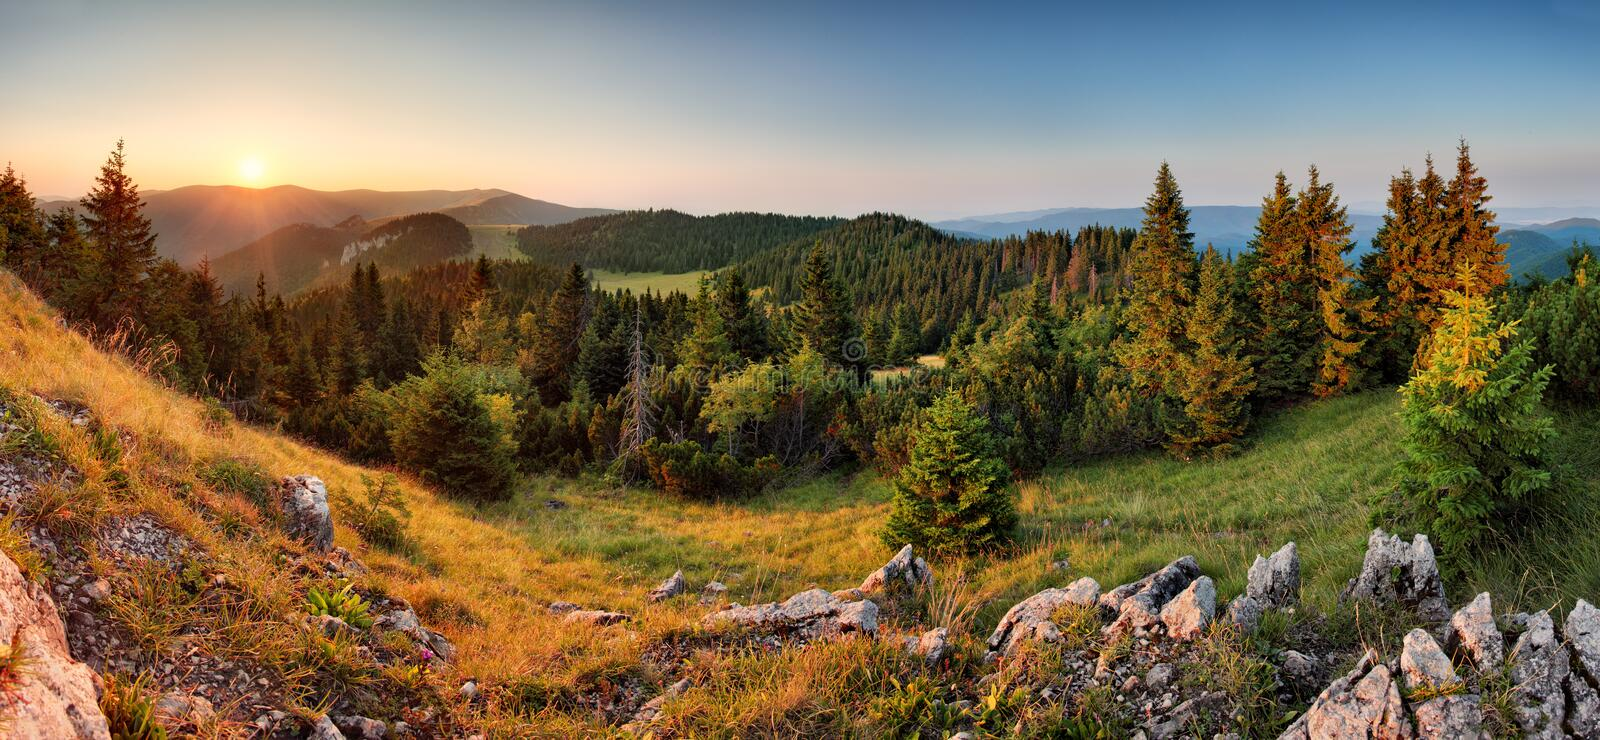 Spruce forest green mountain landscape panorama sunset - Slovakia. Spruce forest green mountain landscape panorama sunset, Slovakia royalty free stock photos